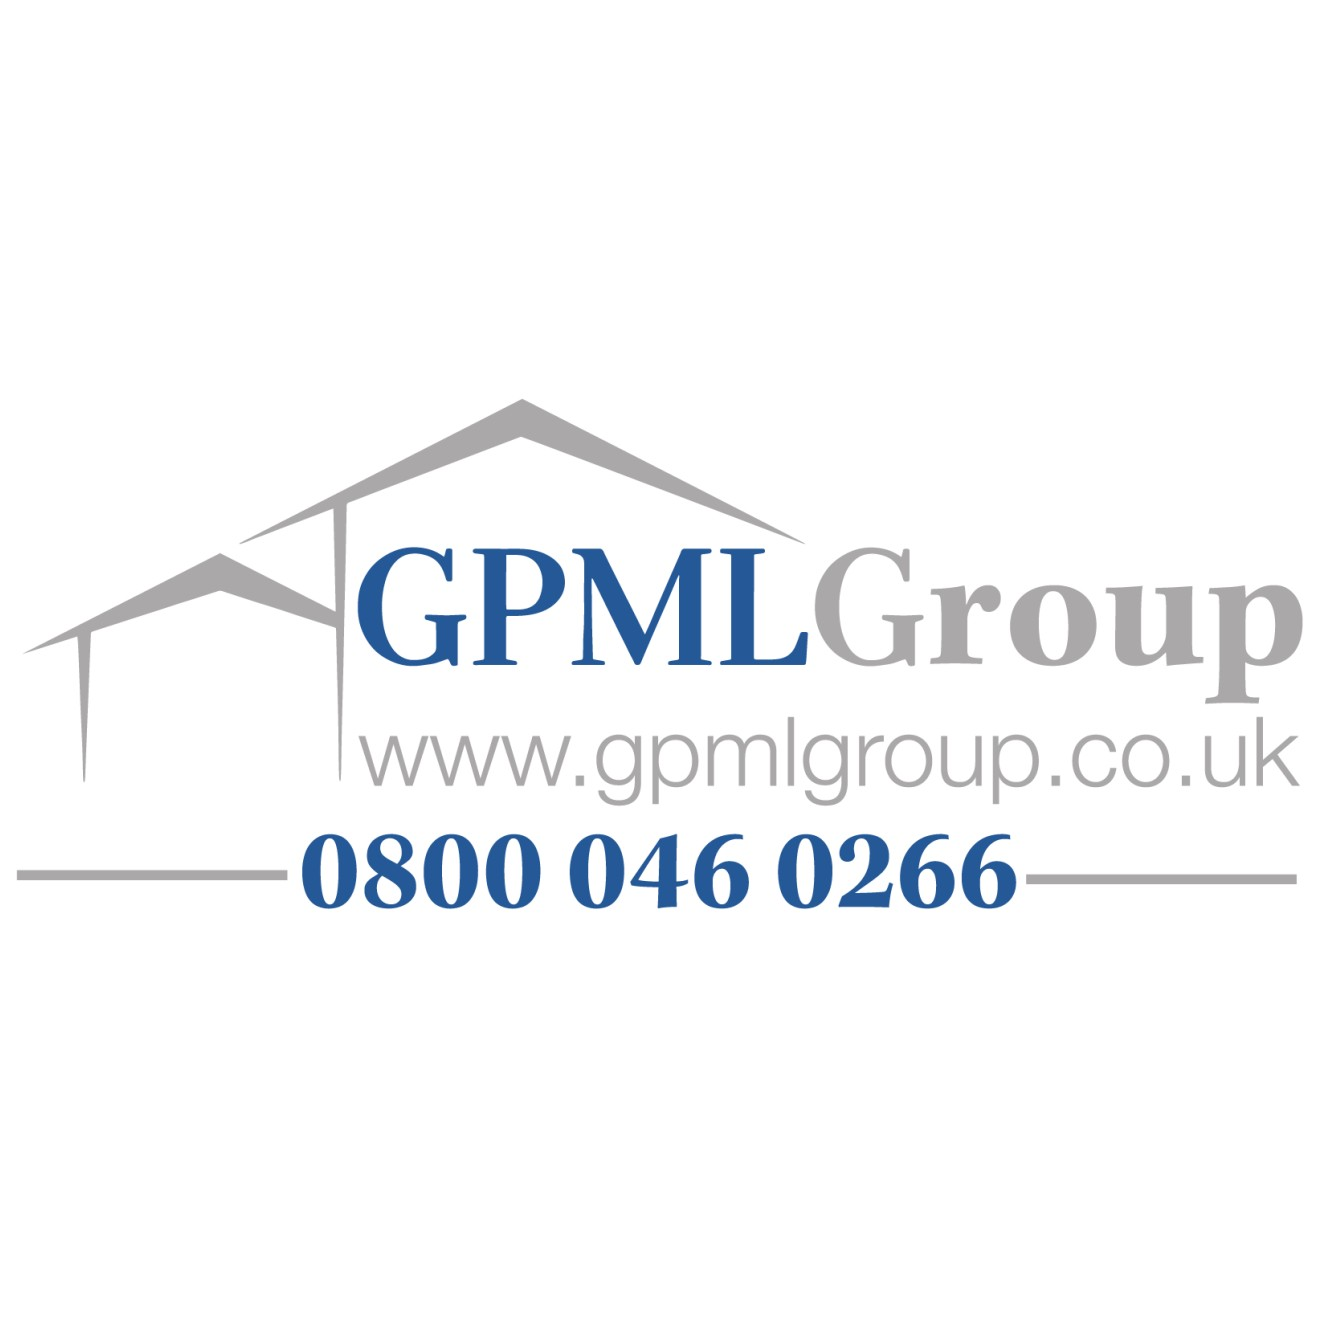 Logo of GPML Group